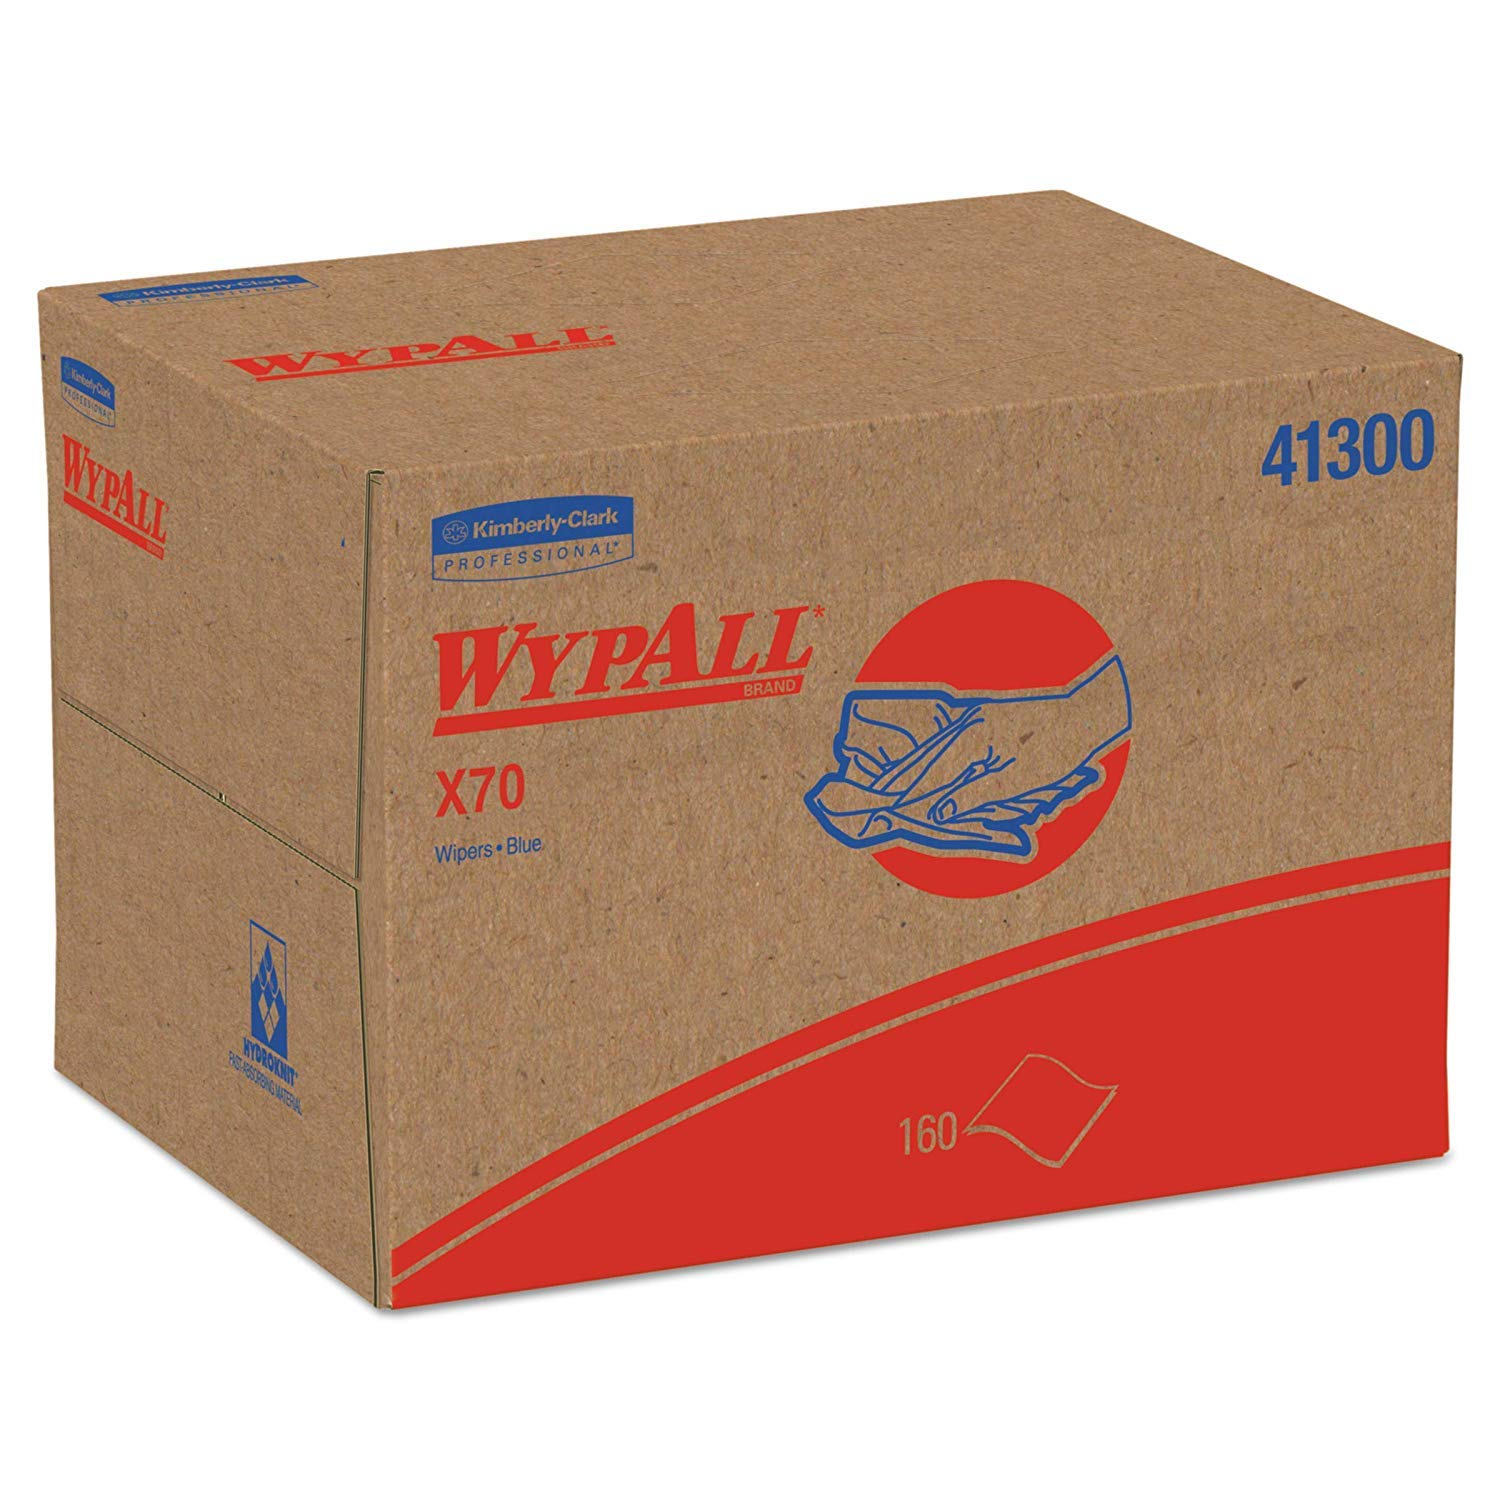 Wypall 41300 X70 Cloths, Brag Box, 12 1/2 x 16 4/5, White (Case of 152) (304)